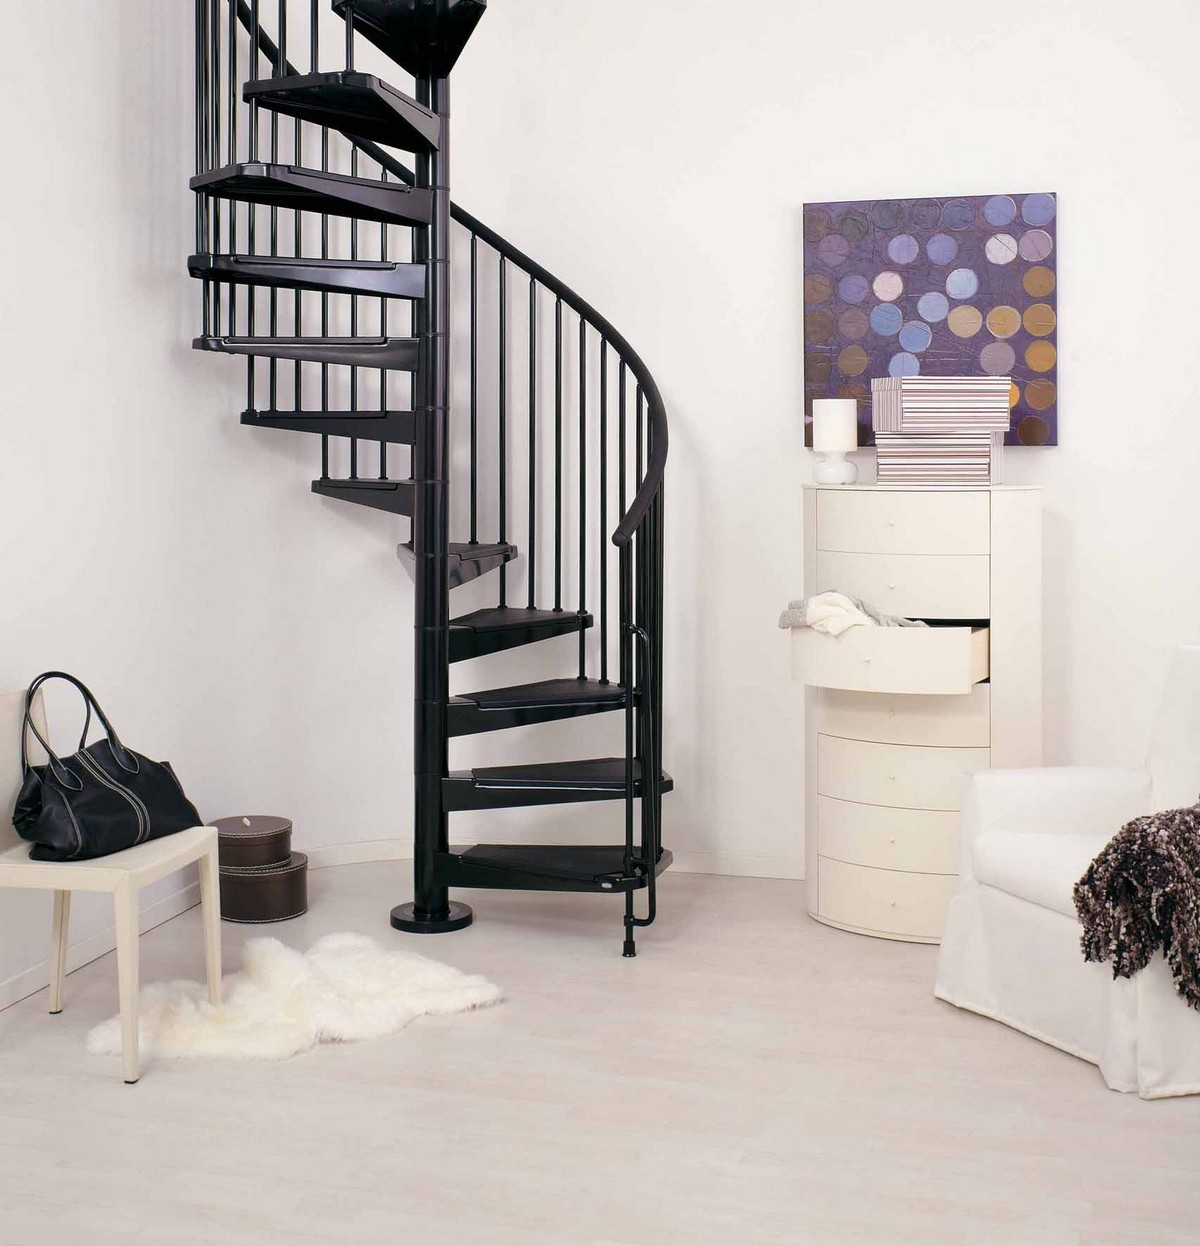 E Stairs Civik Spiral Staircase Kit - Metal, Steel And Wood Spiral